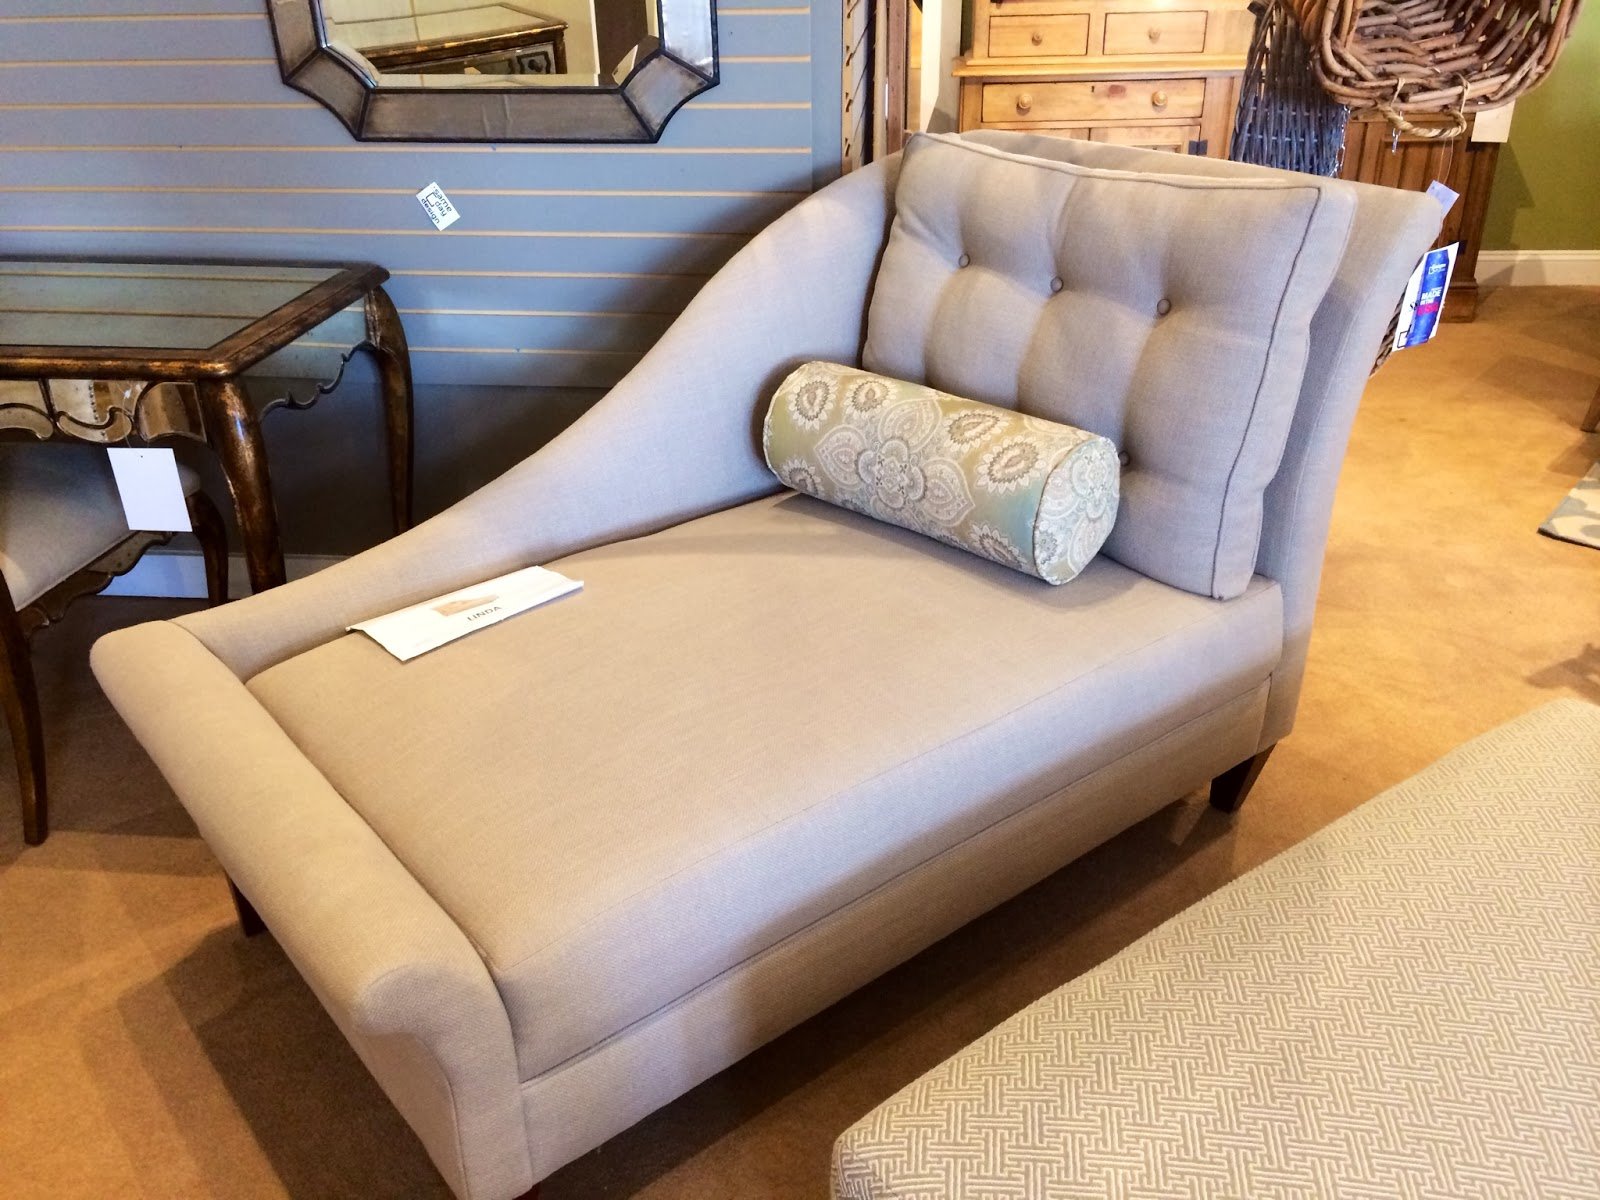 kensington chaise sofa bed in johor bahru style the history of lounge